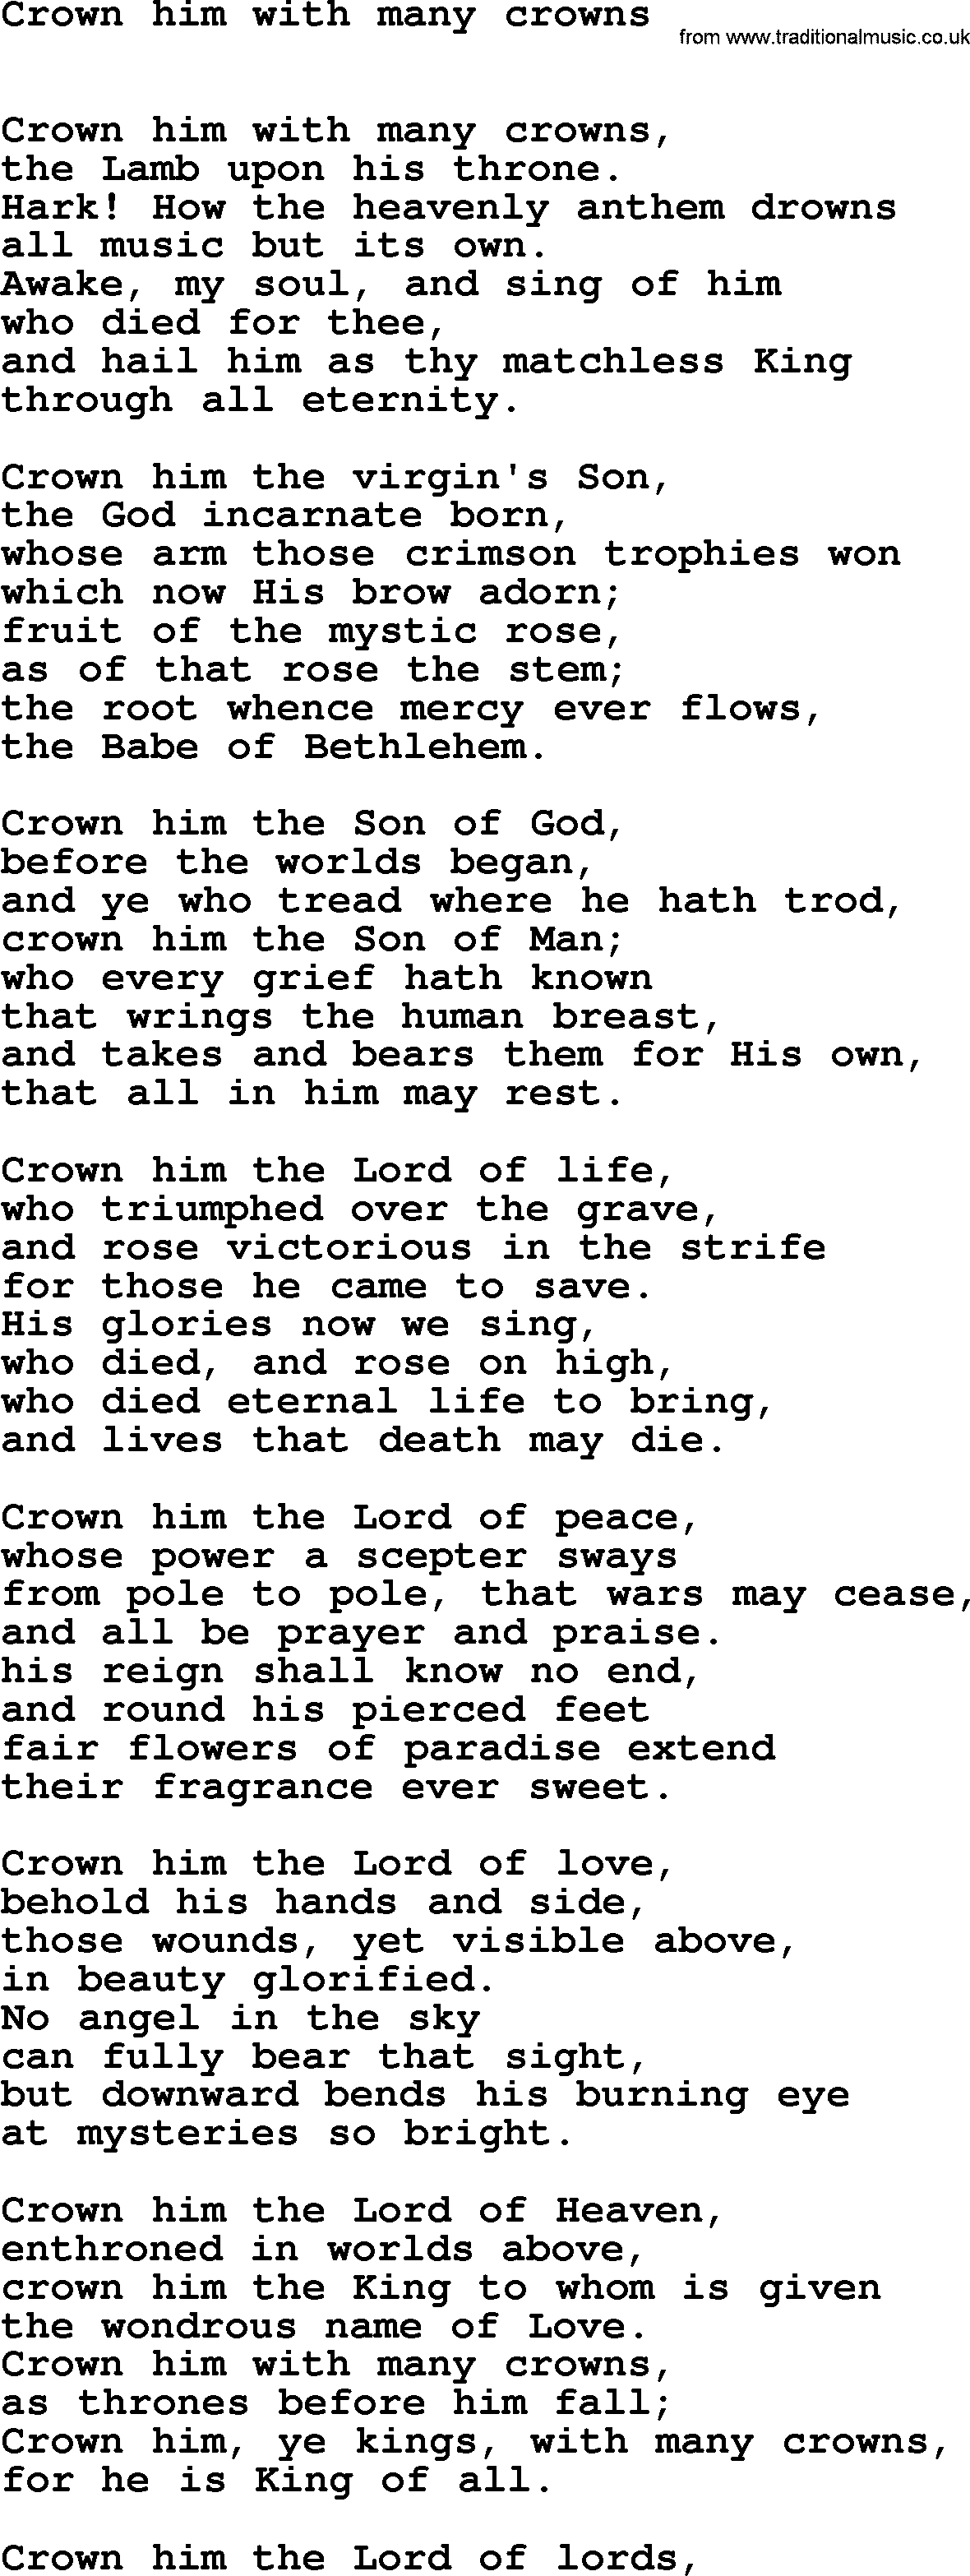 hymns ancient and modern song crown him with many crowns